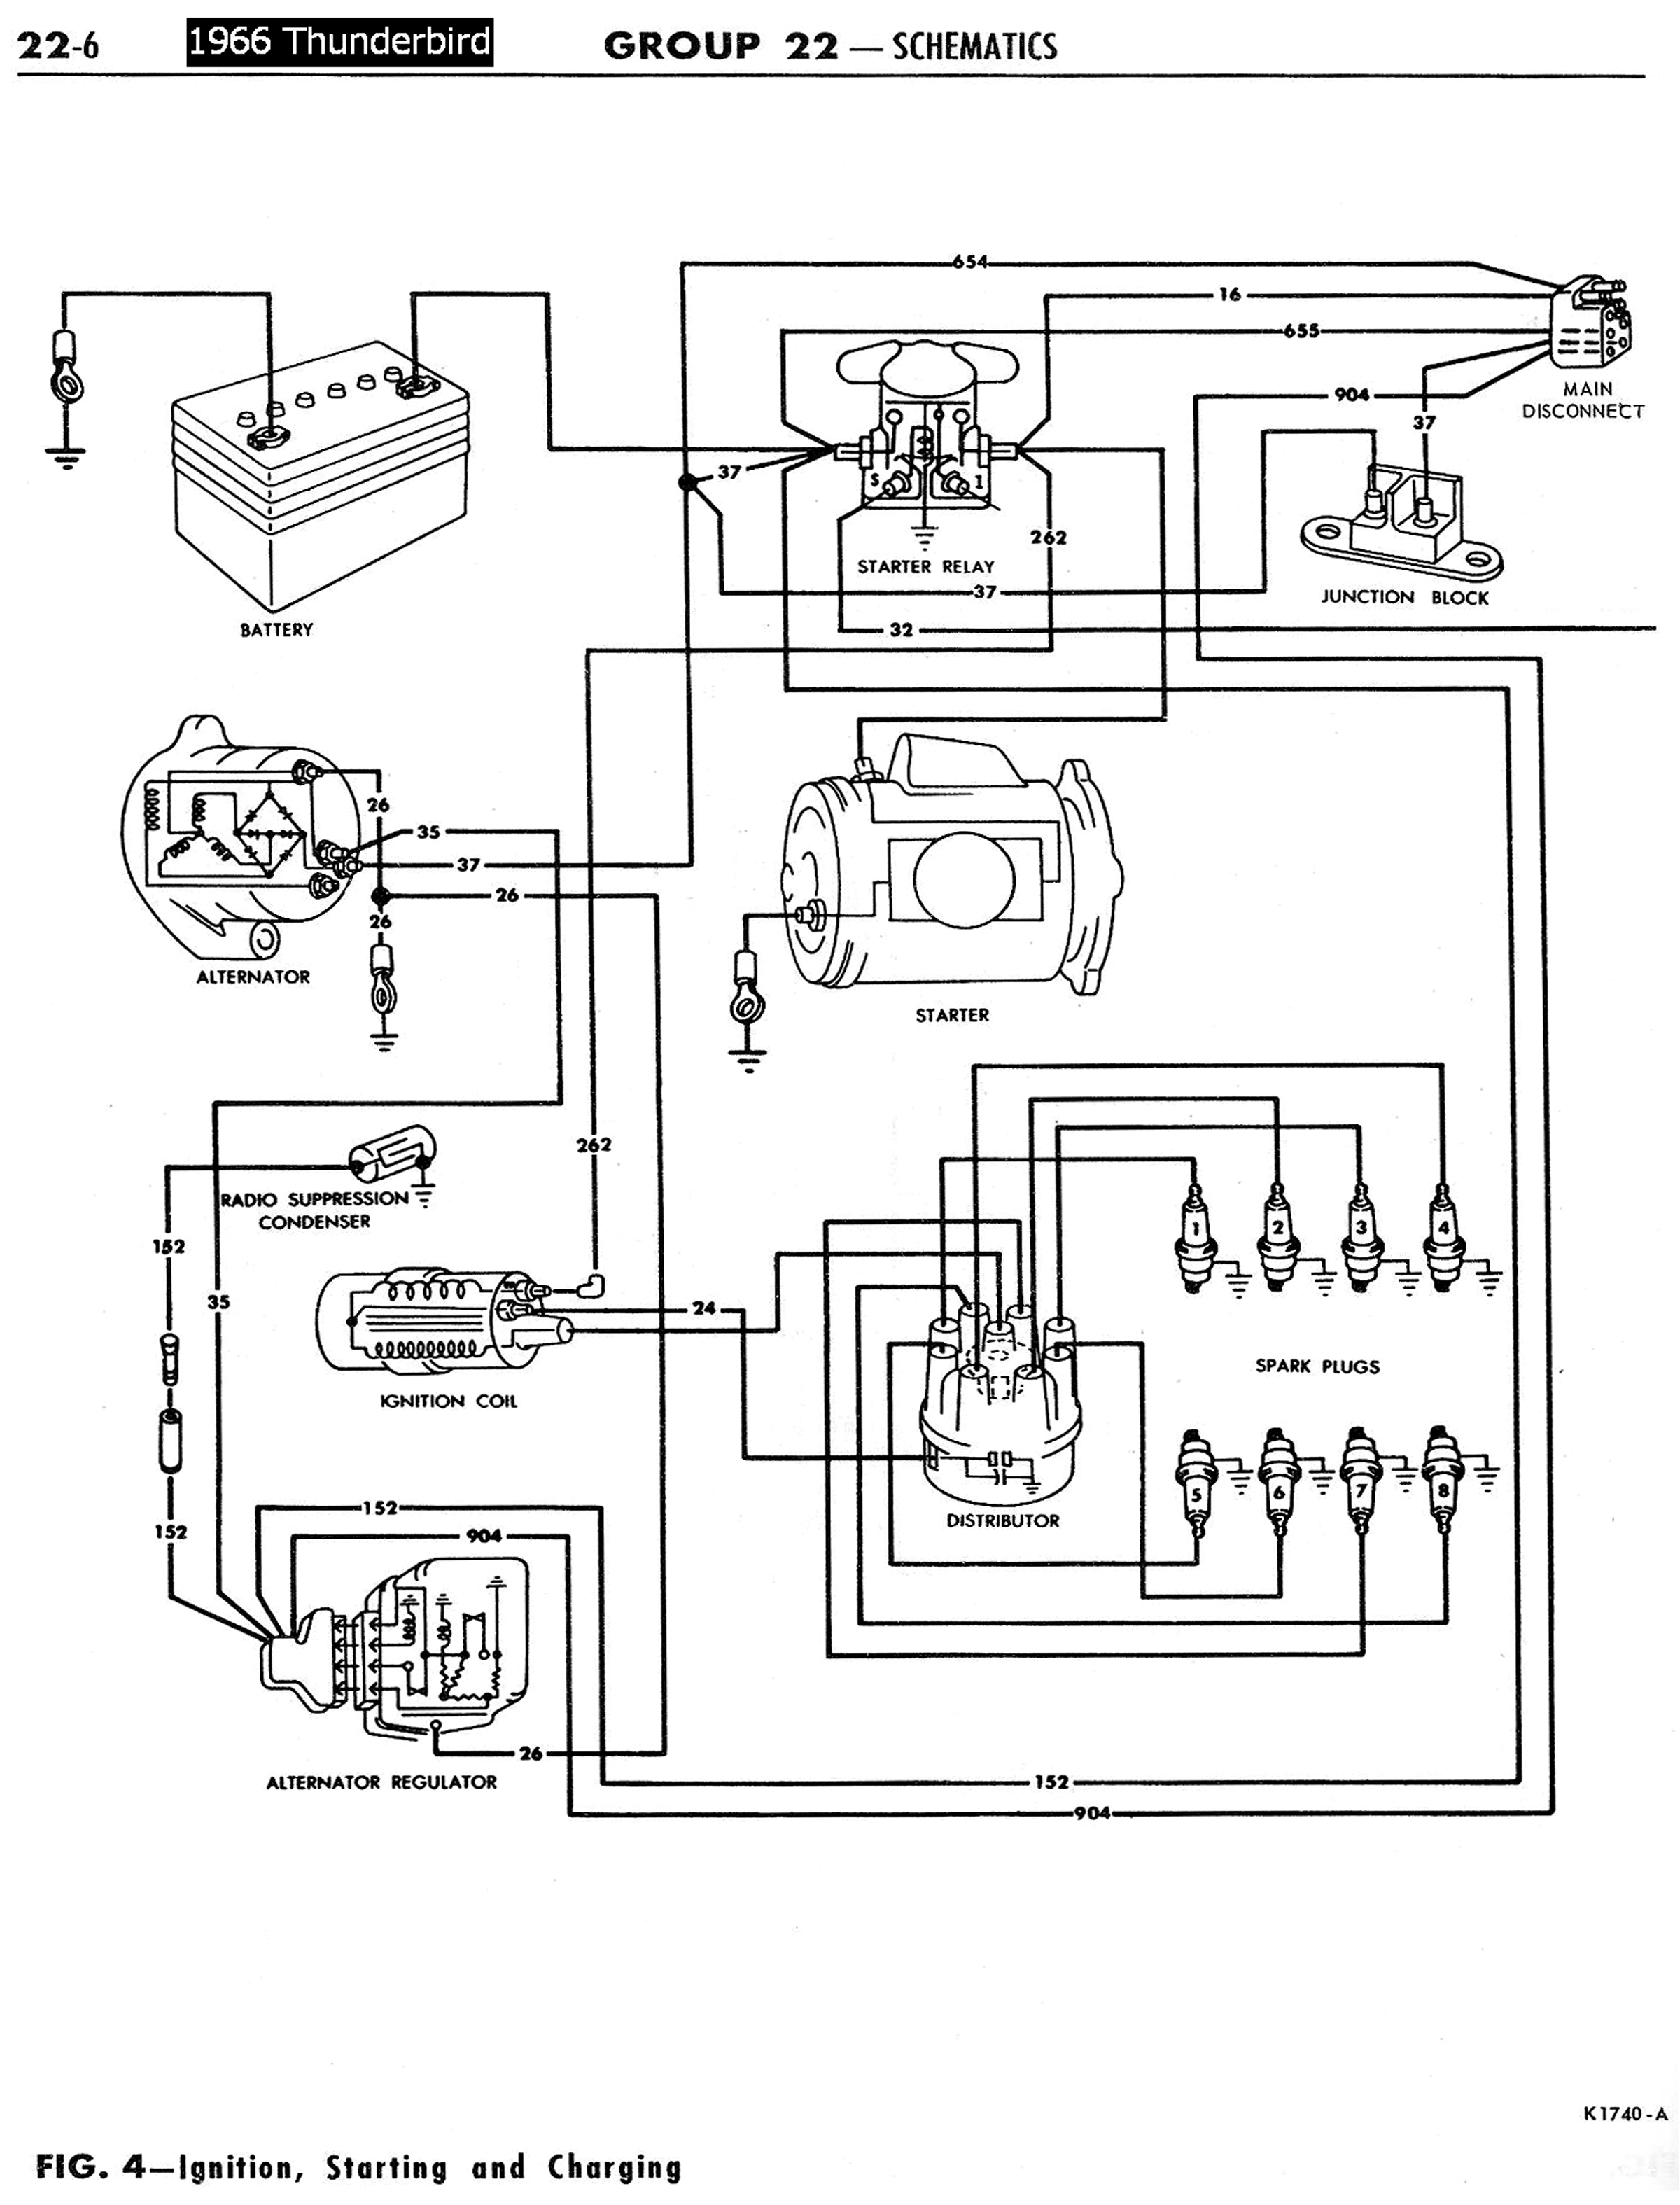 66TbirdIgnitionStartingChargingLeft 1958 68 ford electrical schematics 1955 thunderbird wiring diagram at gsmx.co